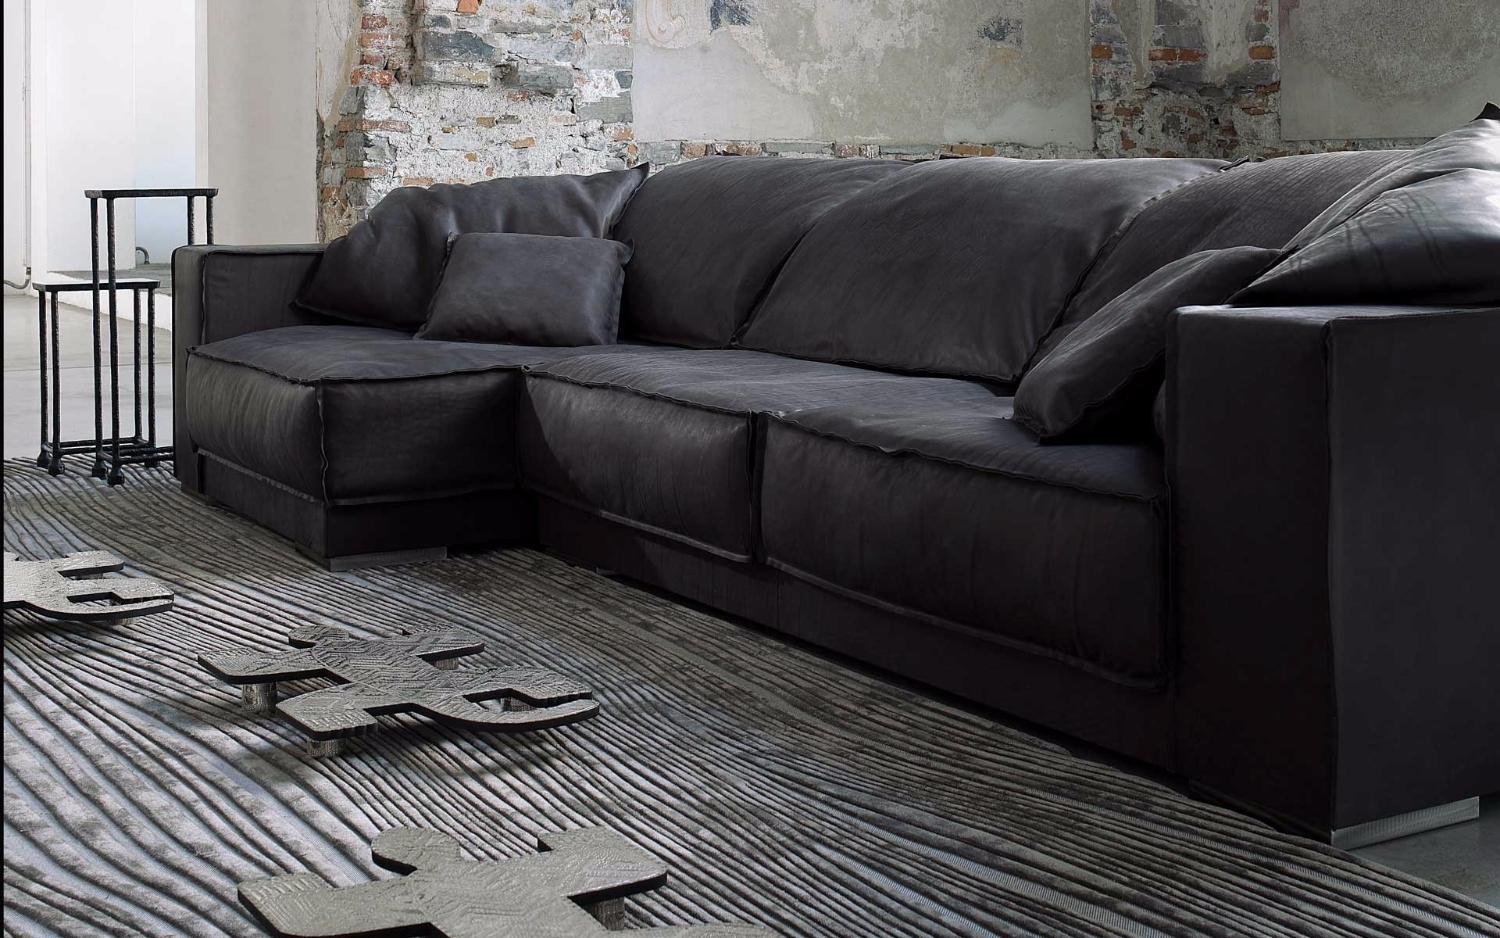 Budapest Soft Sofa Baxter – Armchairs And Sofas Intended For Soft Sofas (Image 2 of 10)